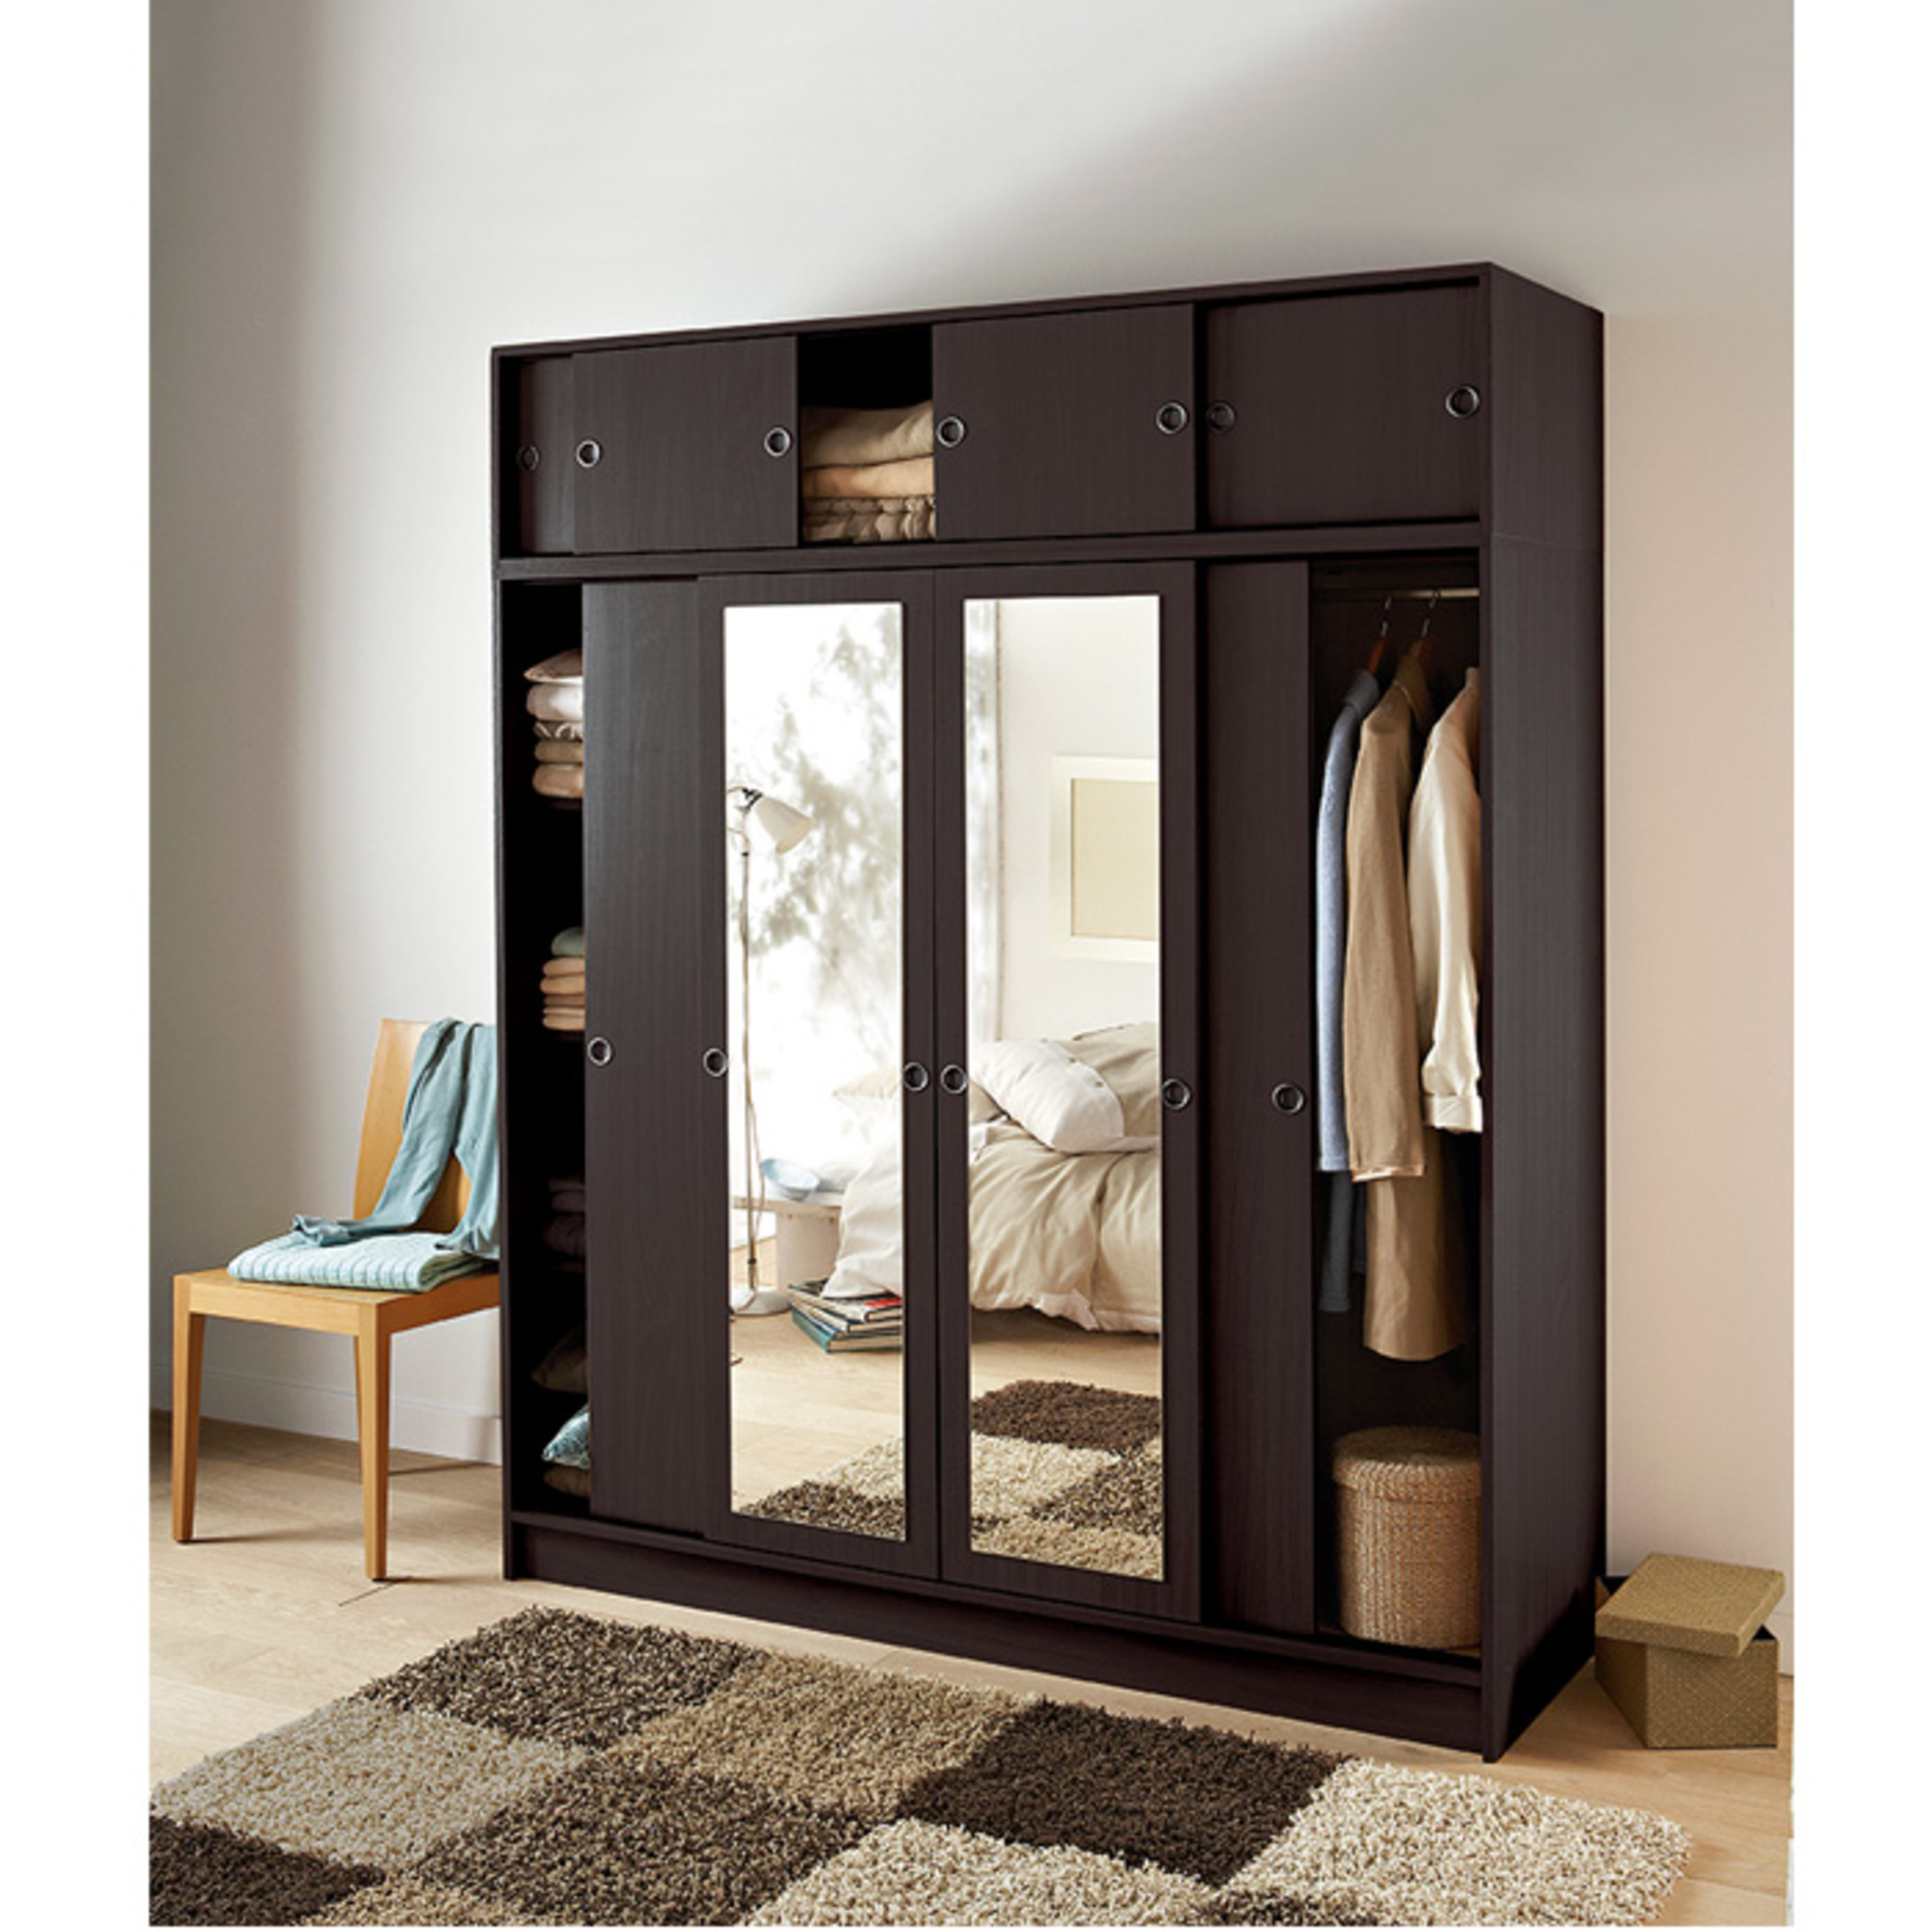 armoire 4 portes coulissantes surmeuble villar al. Black Bedroom Furniture Sets. Home Design Ideas